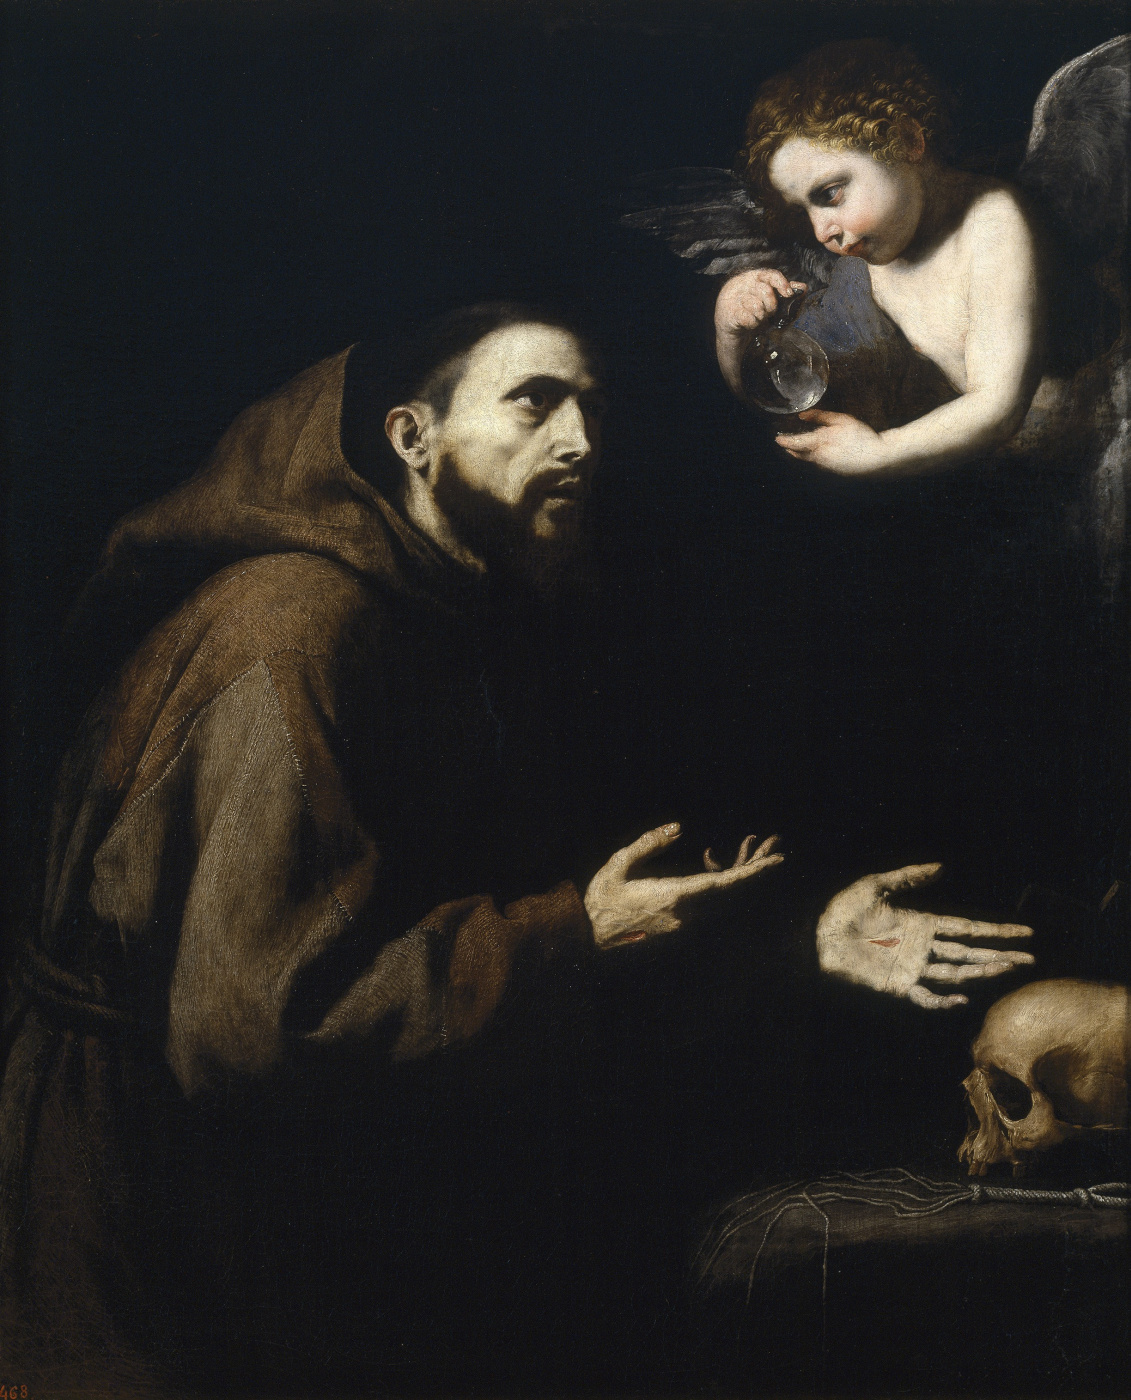 Jose de Ribera. SV. Francis of Assisi and the angel with the water